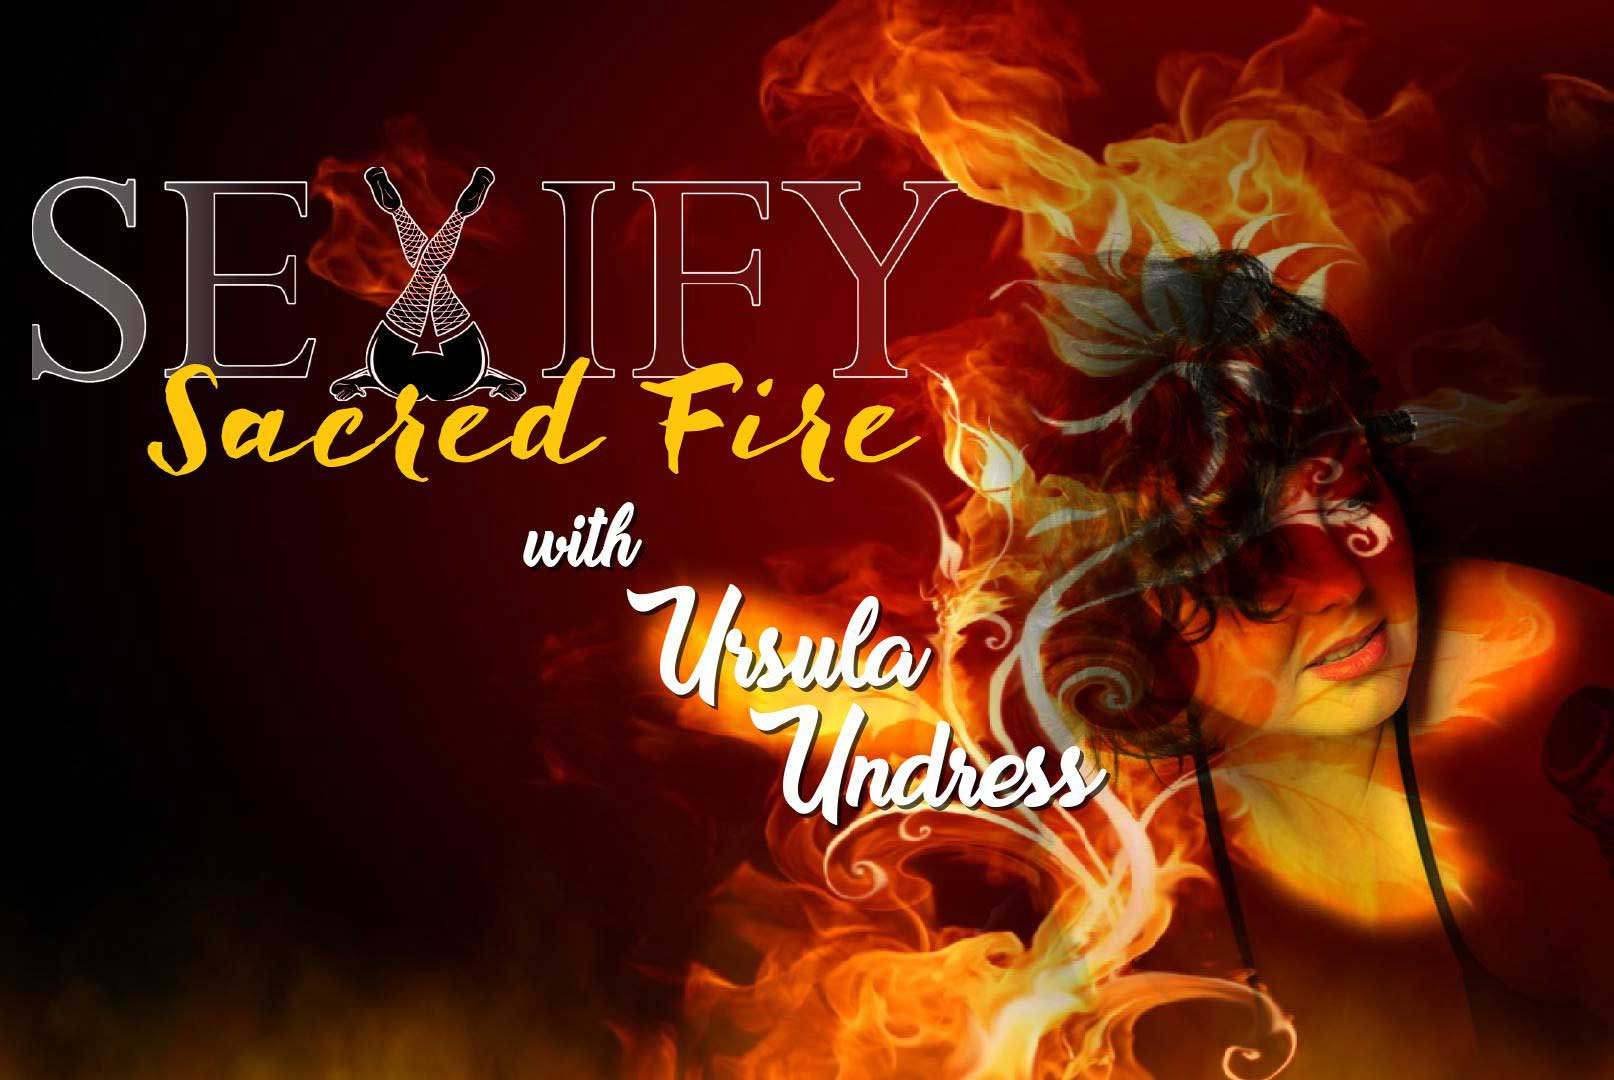 Sexify Sacred Fire - Virtual